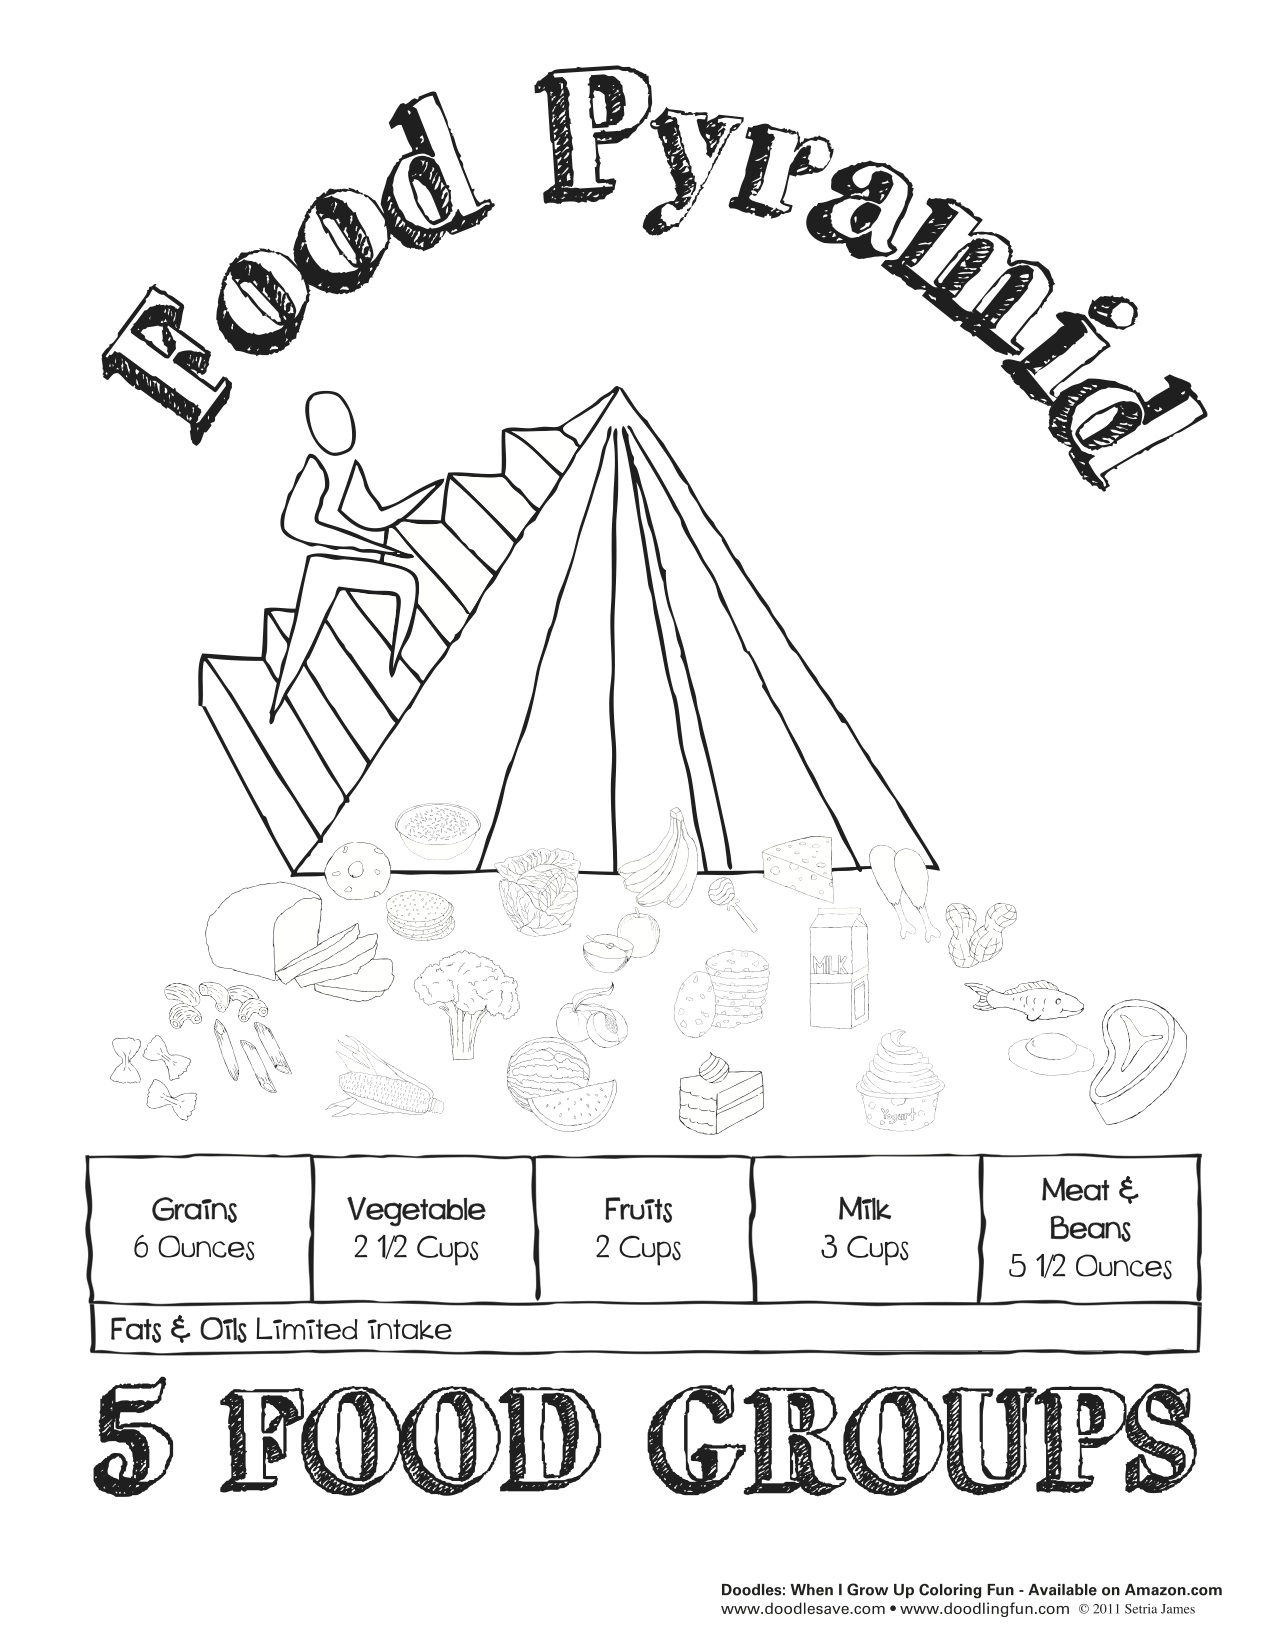 national nutrition month doodles ave Nutrition Coloring Pages Printable  Coloring Pages For Nutrition Month